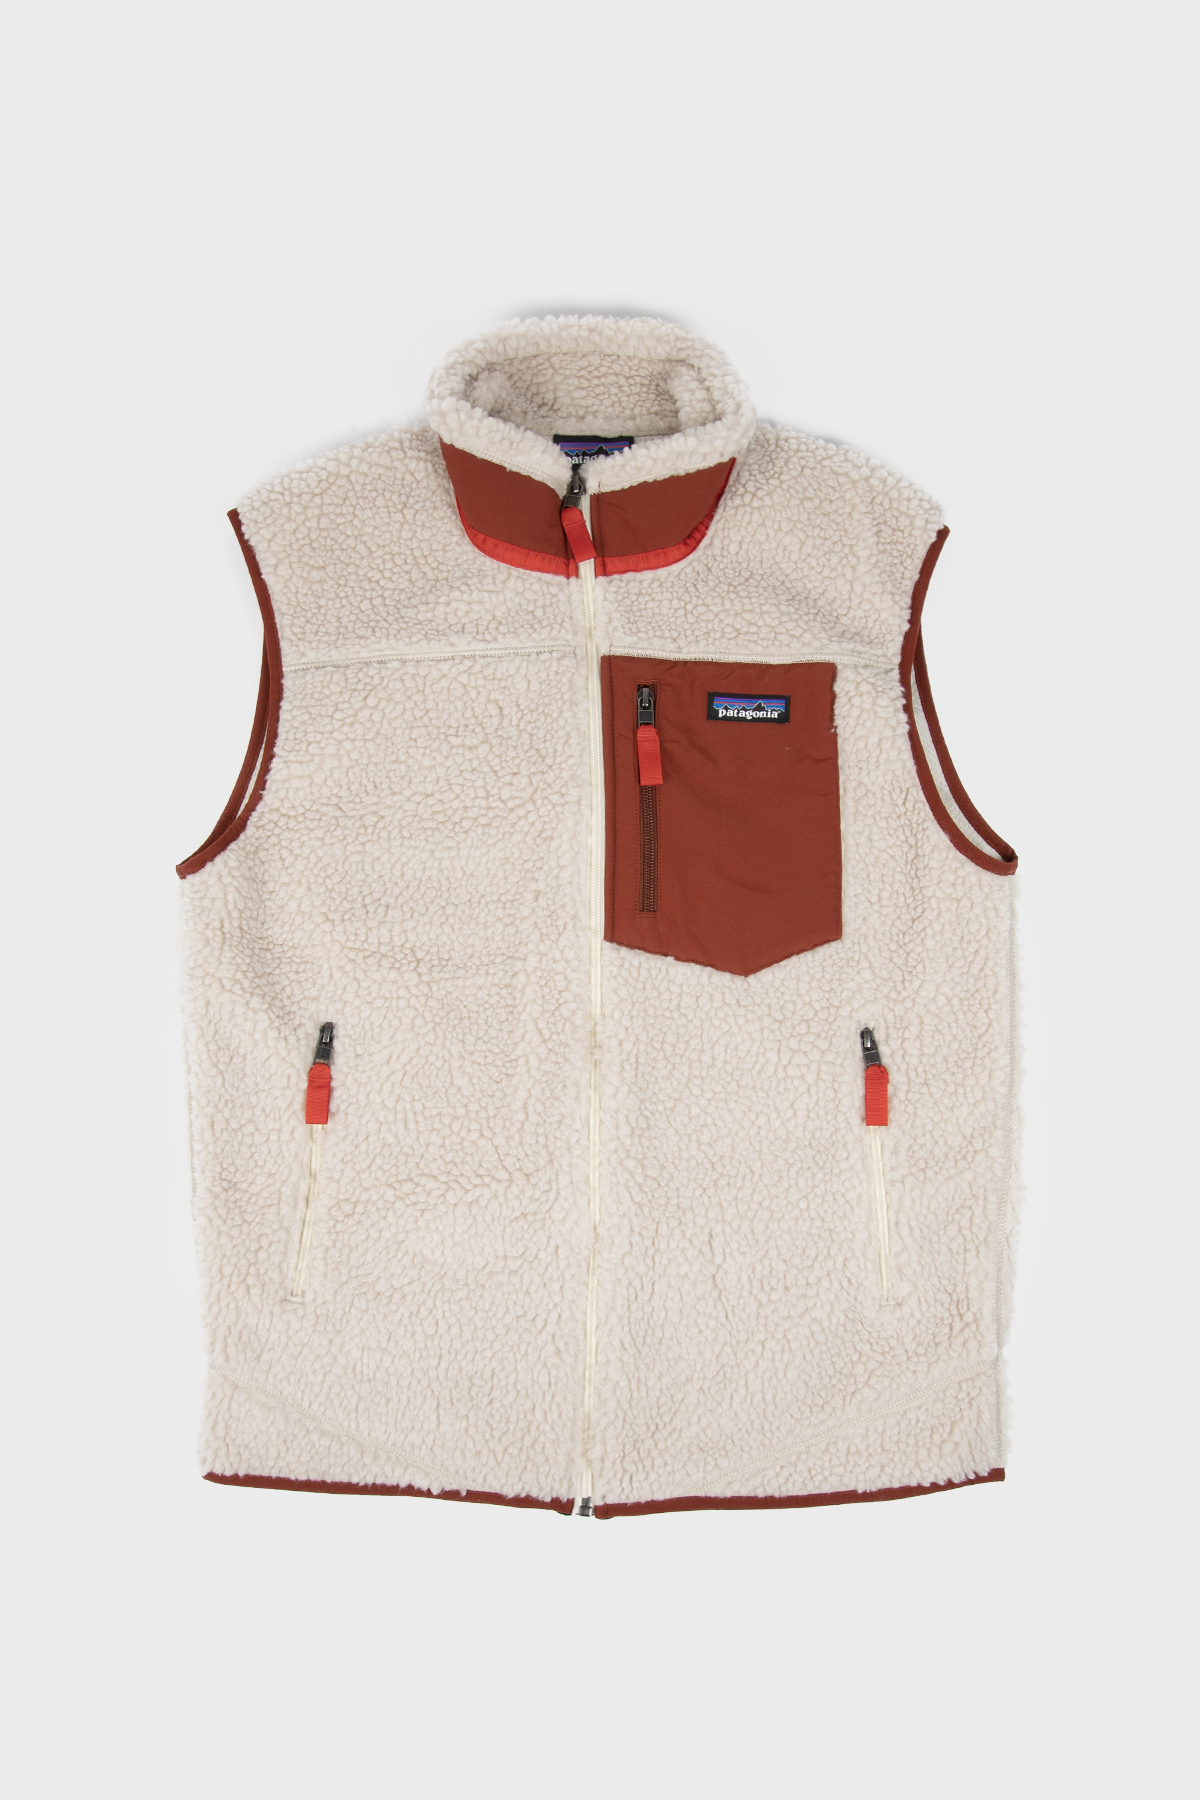 Patagonia - Classic Retro-X Fleece Vest - Natural Barn Red